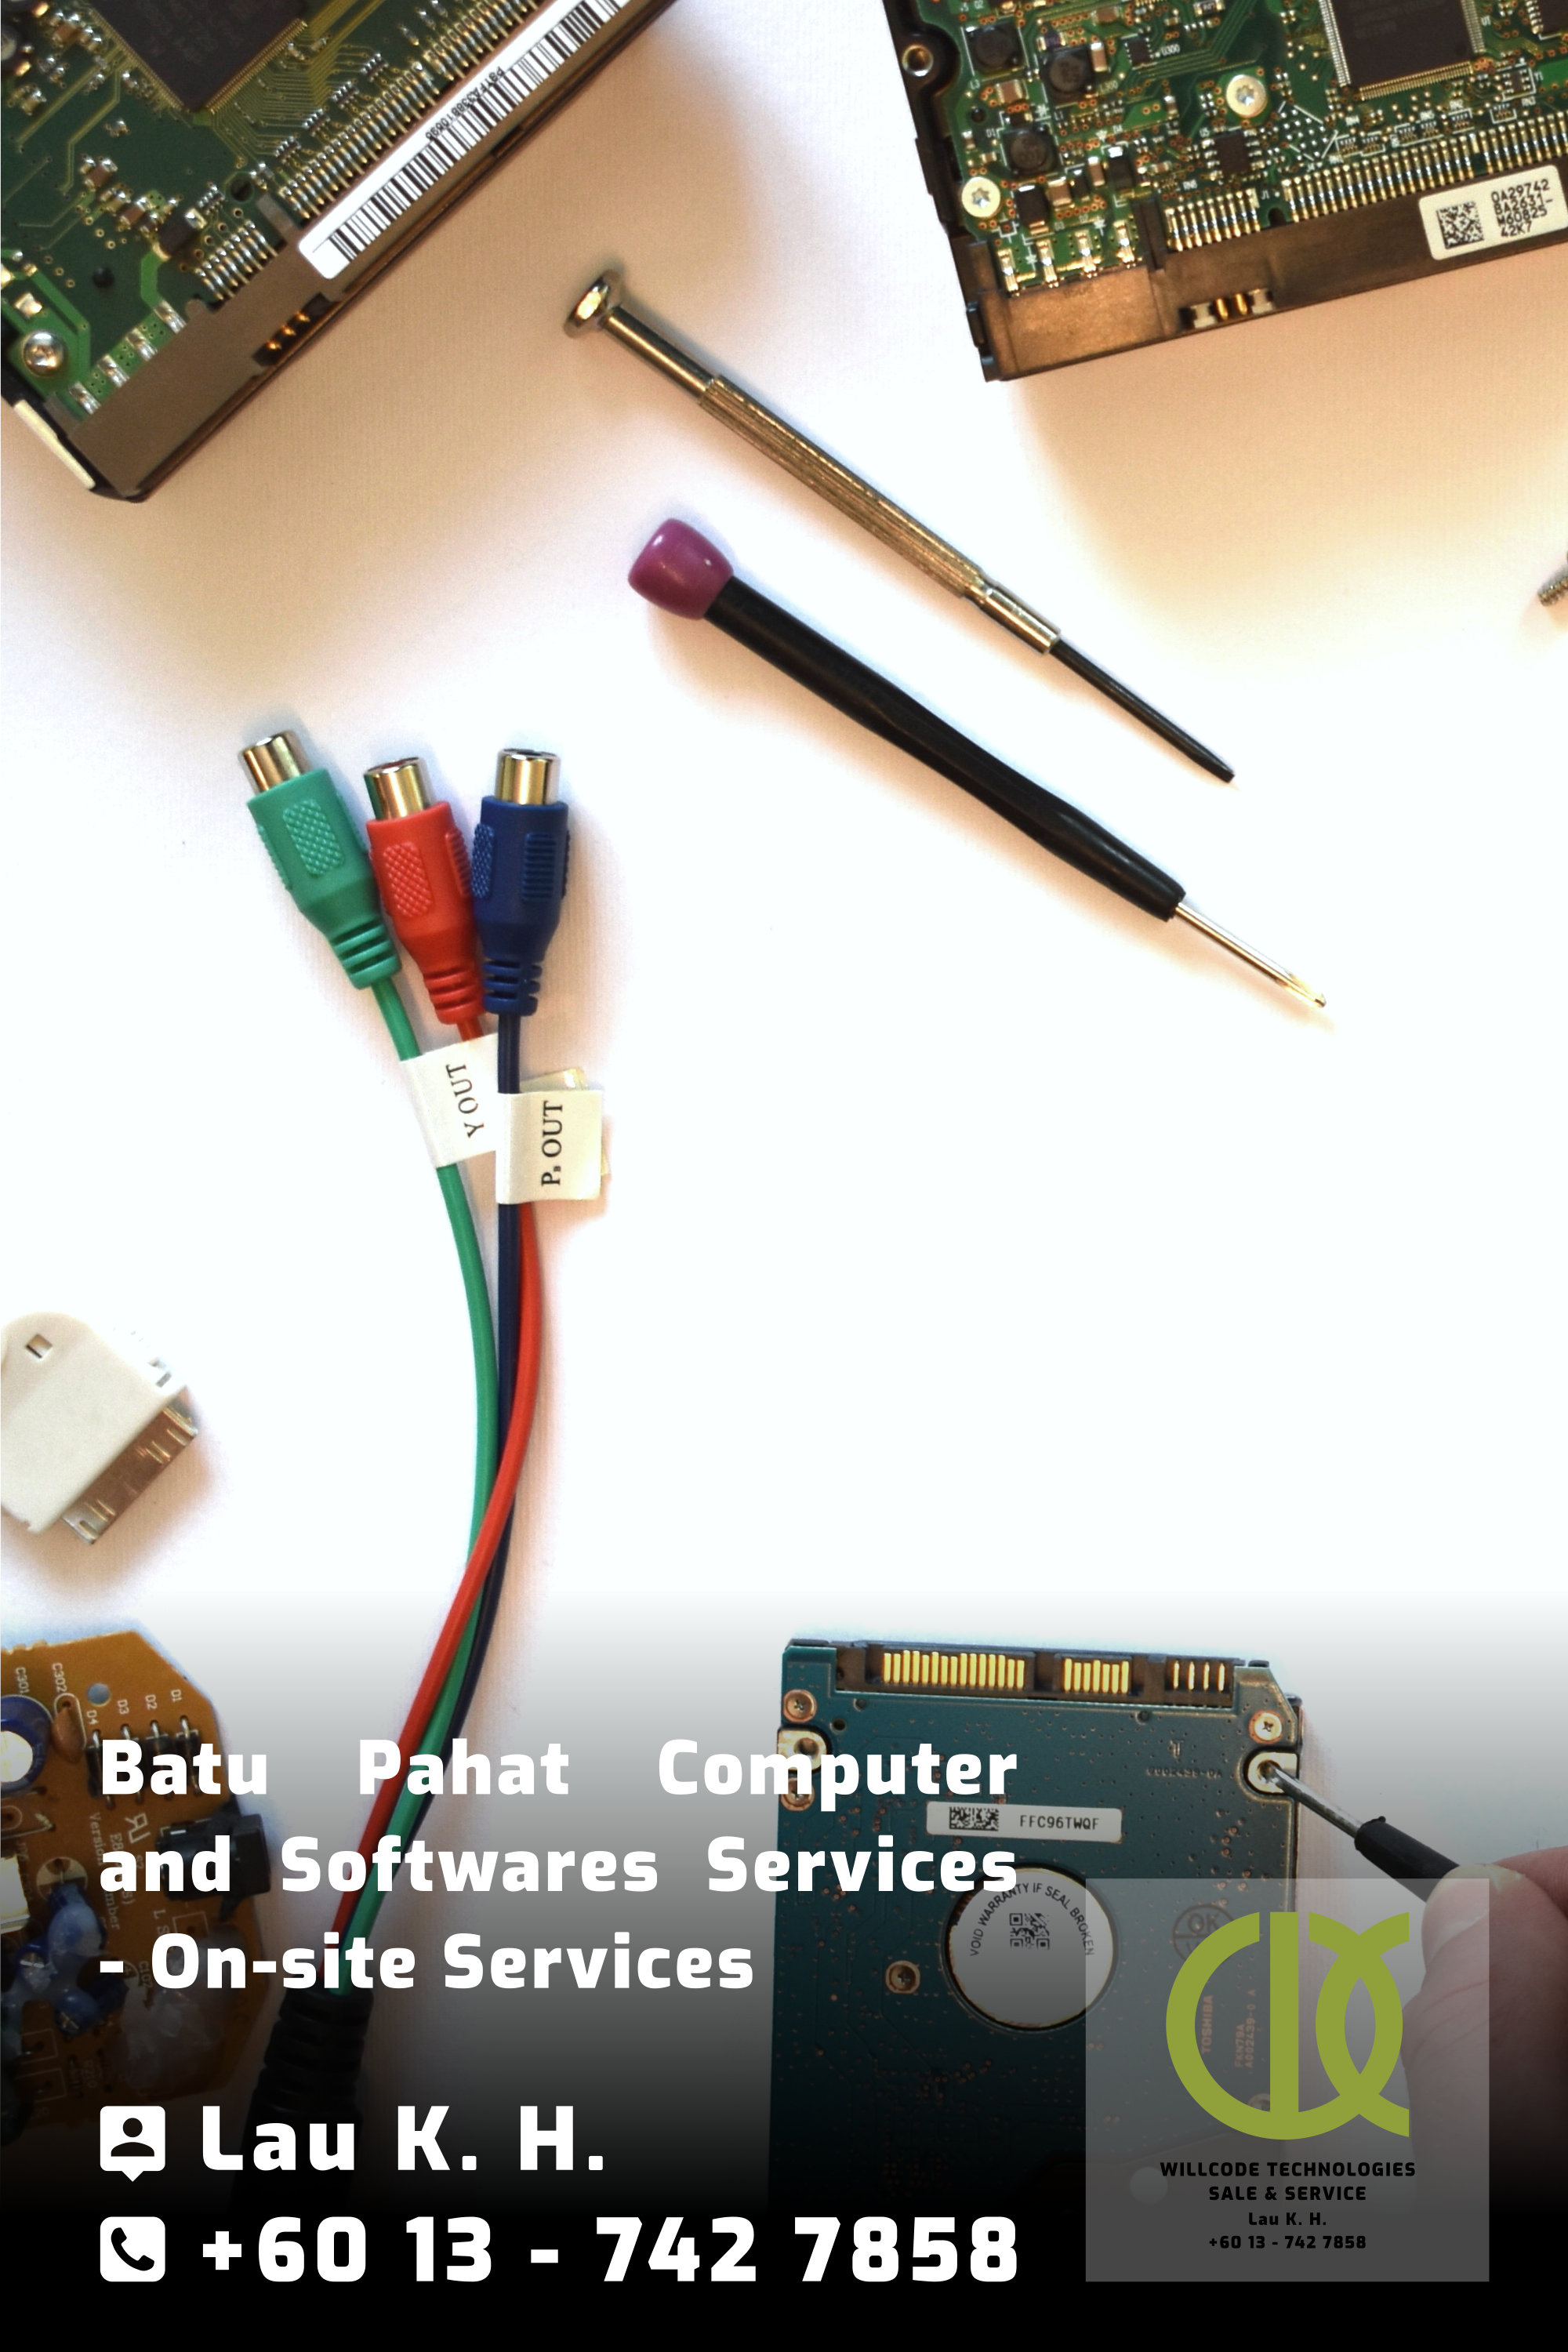 Batu Pahat Computer Services Computer Sales Softwares Services On-site Services Willcode Technologies Sale and Service Logo A04